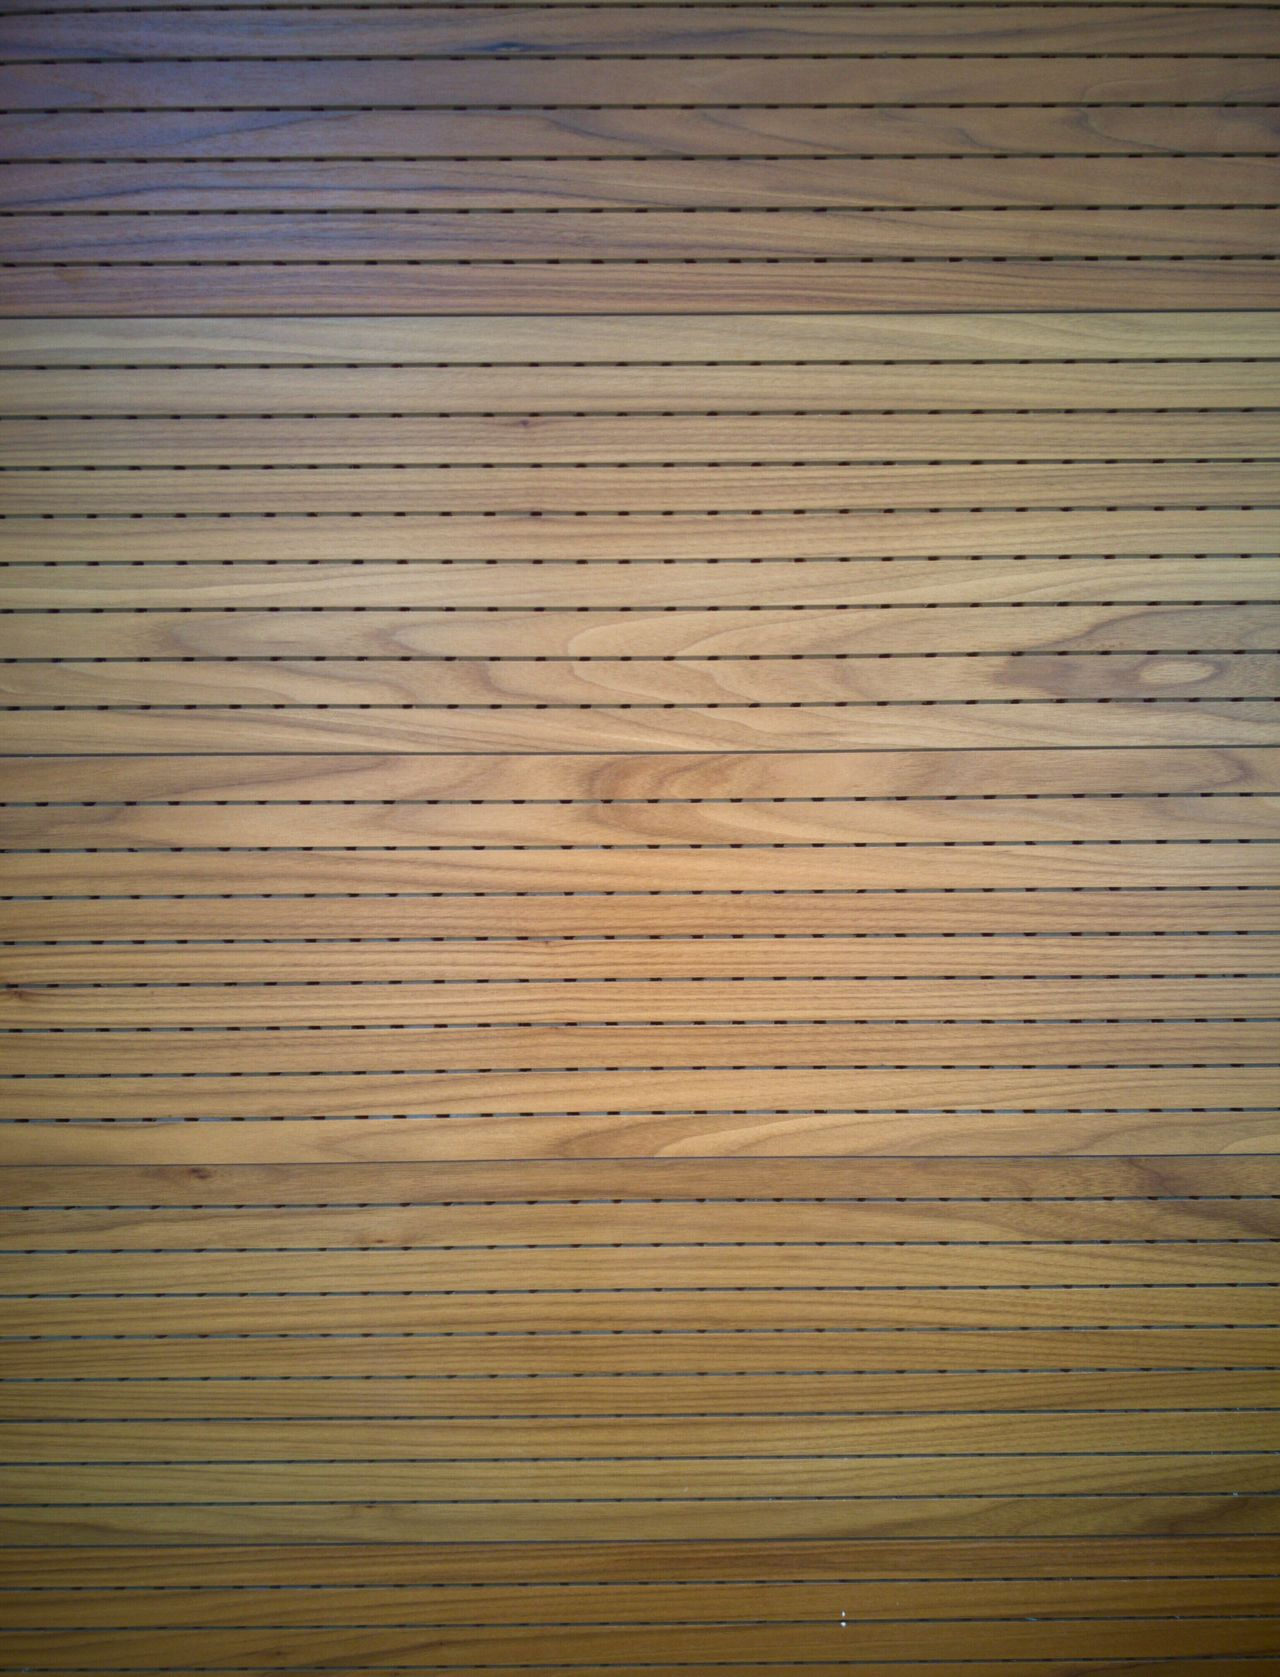 Wood - Material Backgrounds Wood Grain Plank Textured  Pattern Brown No People Full Frame Hardwood Close-up Patterns Pattern, Texture, Shape And Form Floor Patterns Wood Tadaa Community AMPt_community Wood Paneling Wooden Texture Parkett Personal Perspective EyeEm Team Getty Images